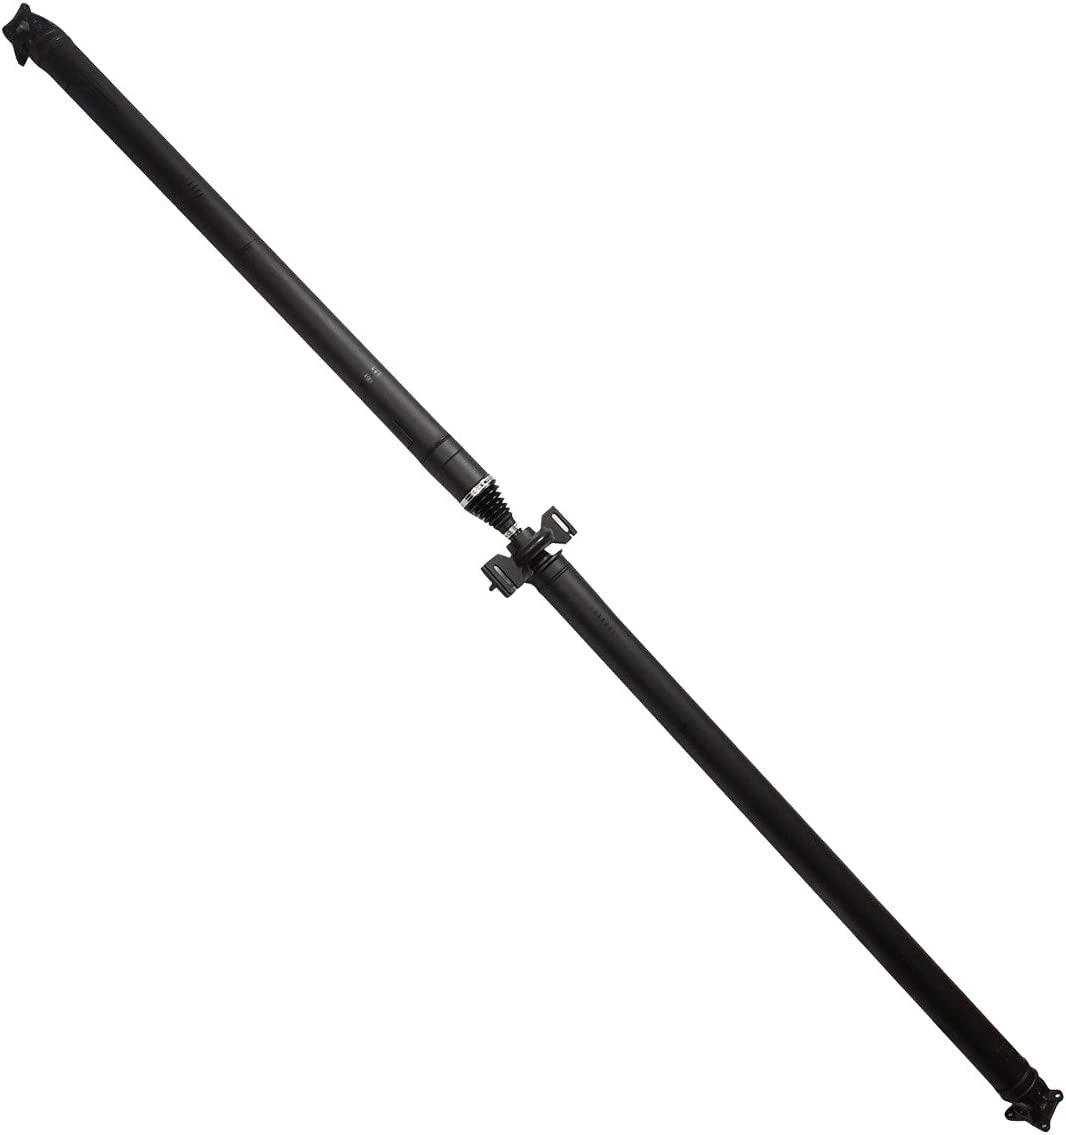 New Rear Driveshaft For Toyota Rav4 4WD AWD 2006 2007 2008 2009 2010 2011 BuyAutoParts 91-01035N New